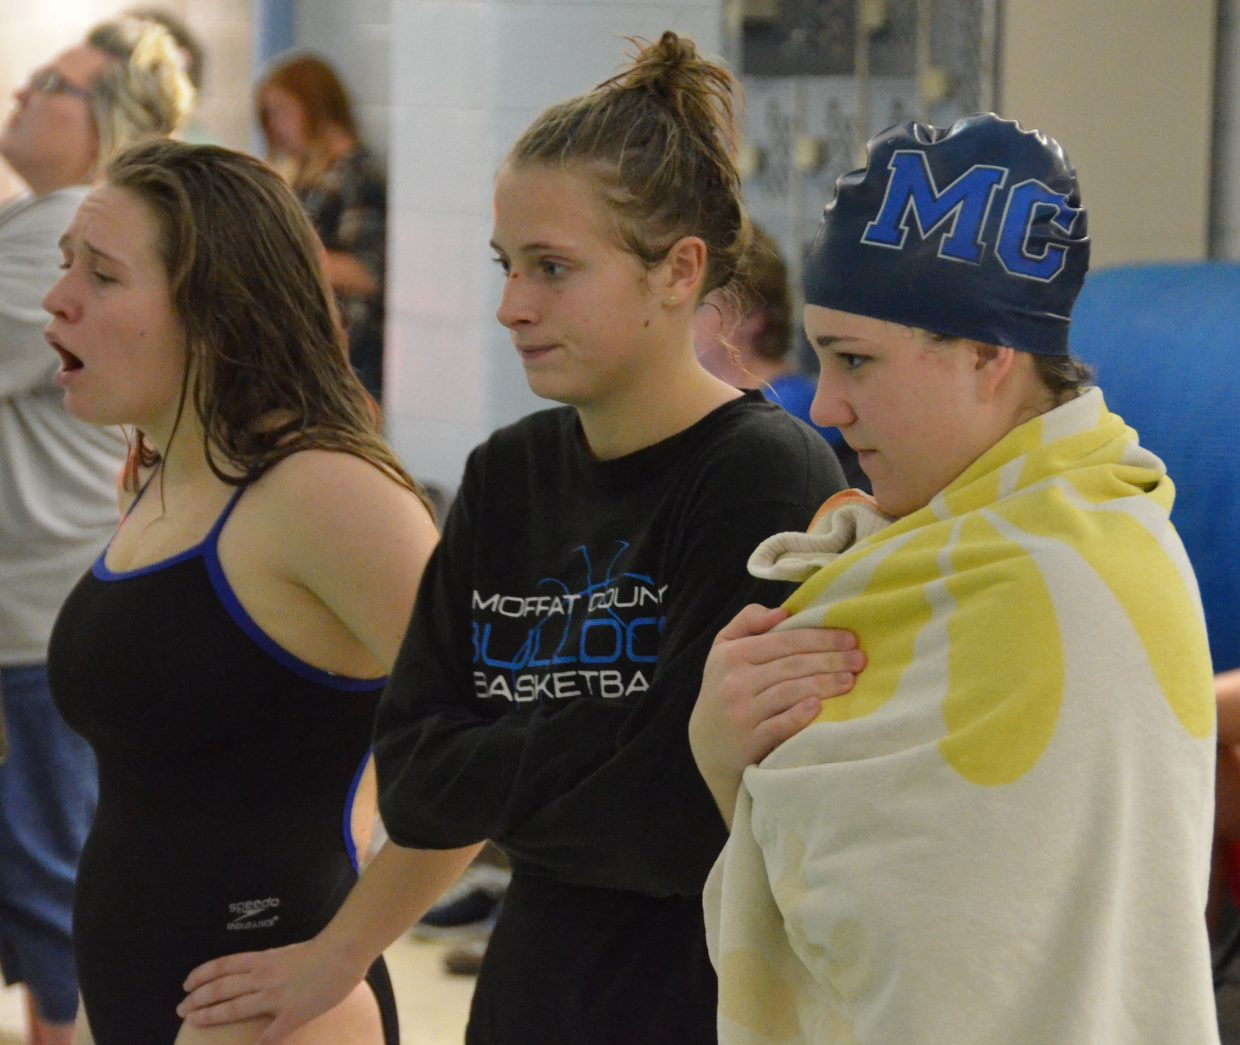 From left, Molly Neton, Kelsey McDiffett and Katelynn Turner provide encouragement for teammates during the Moffat County Meet.